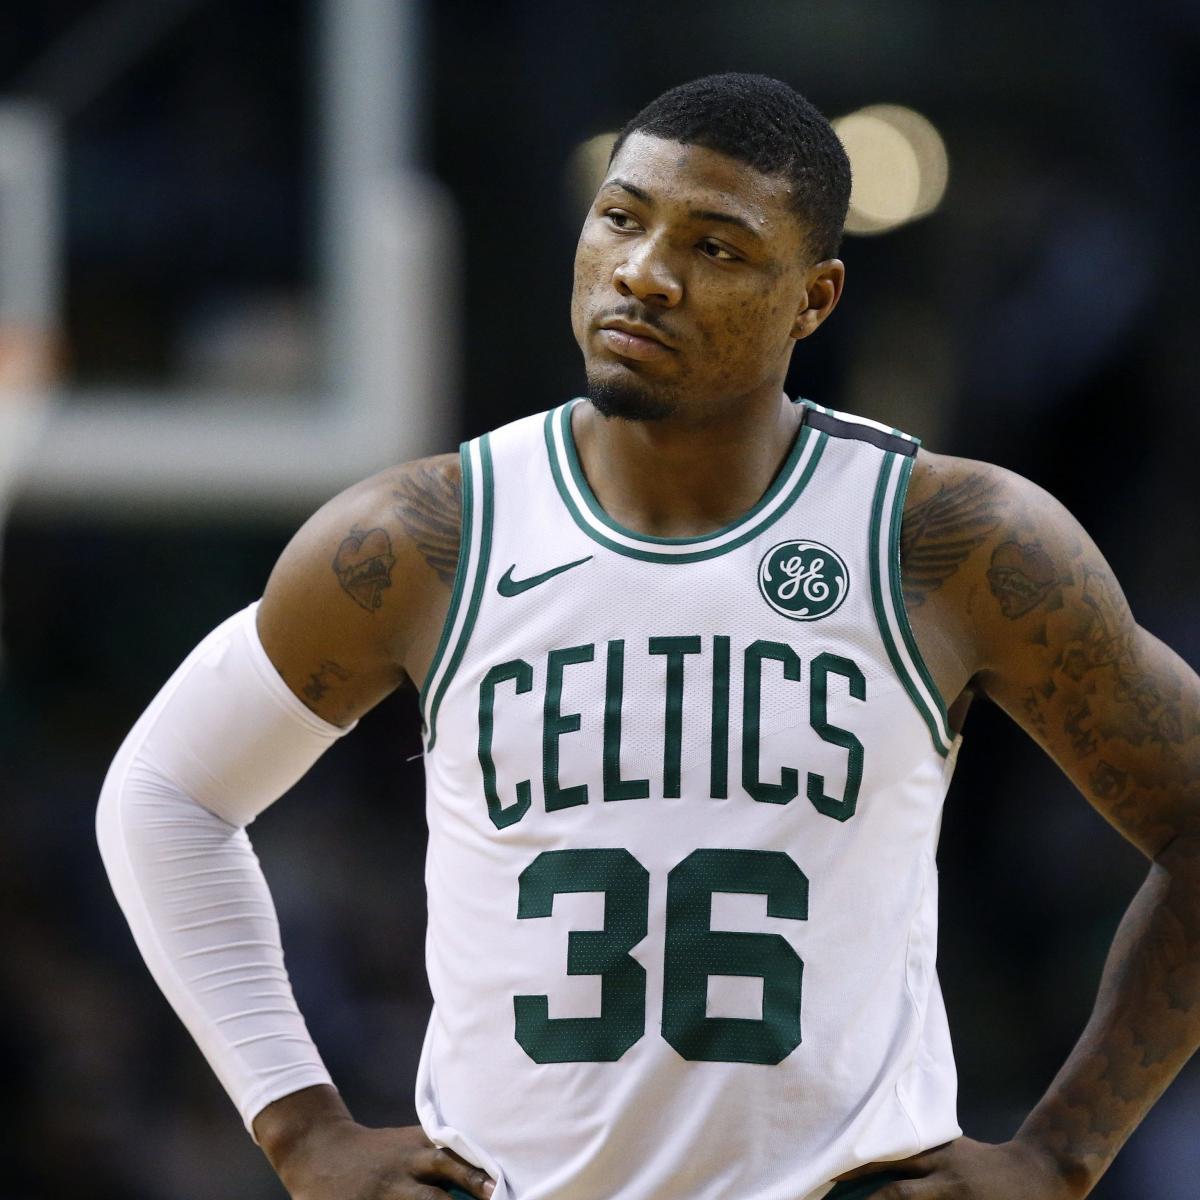 Celtics Trade Rumors: Nuggets Pursuing Marcus Smart